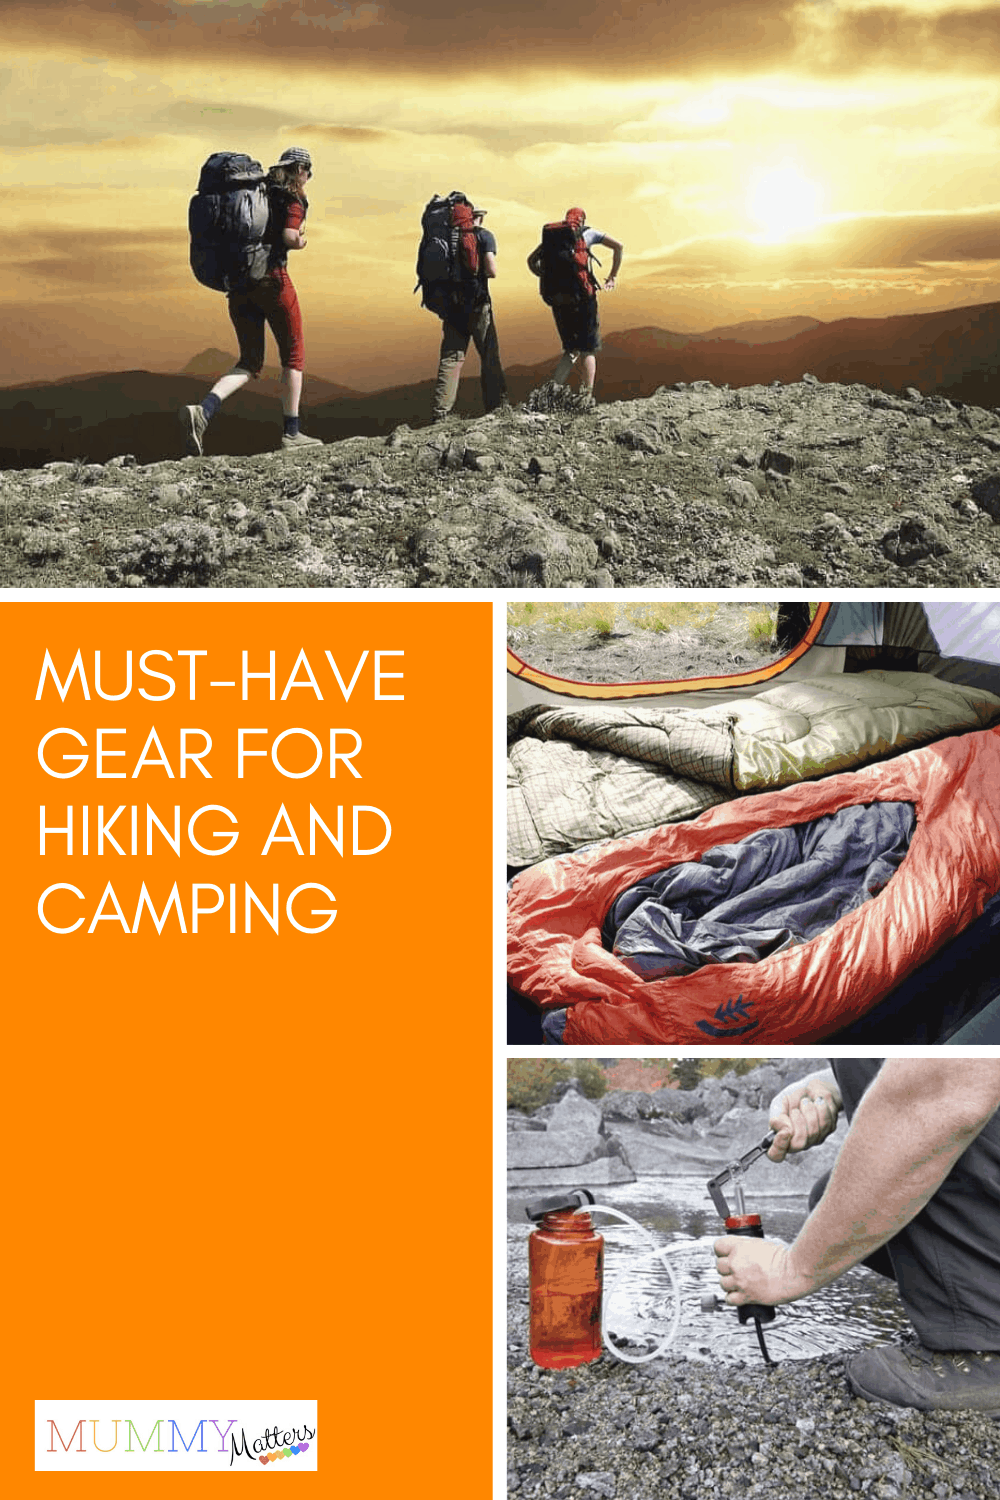 If you're unsure what to take when hiking and camping, this list covers all the must-have gear, from the most obvious essentials to the lesser-known ones.